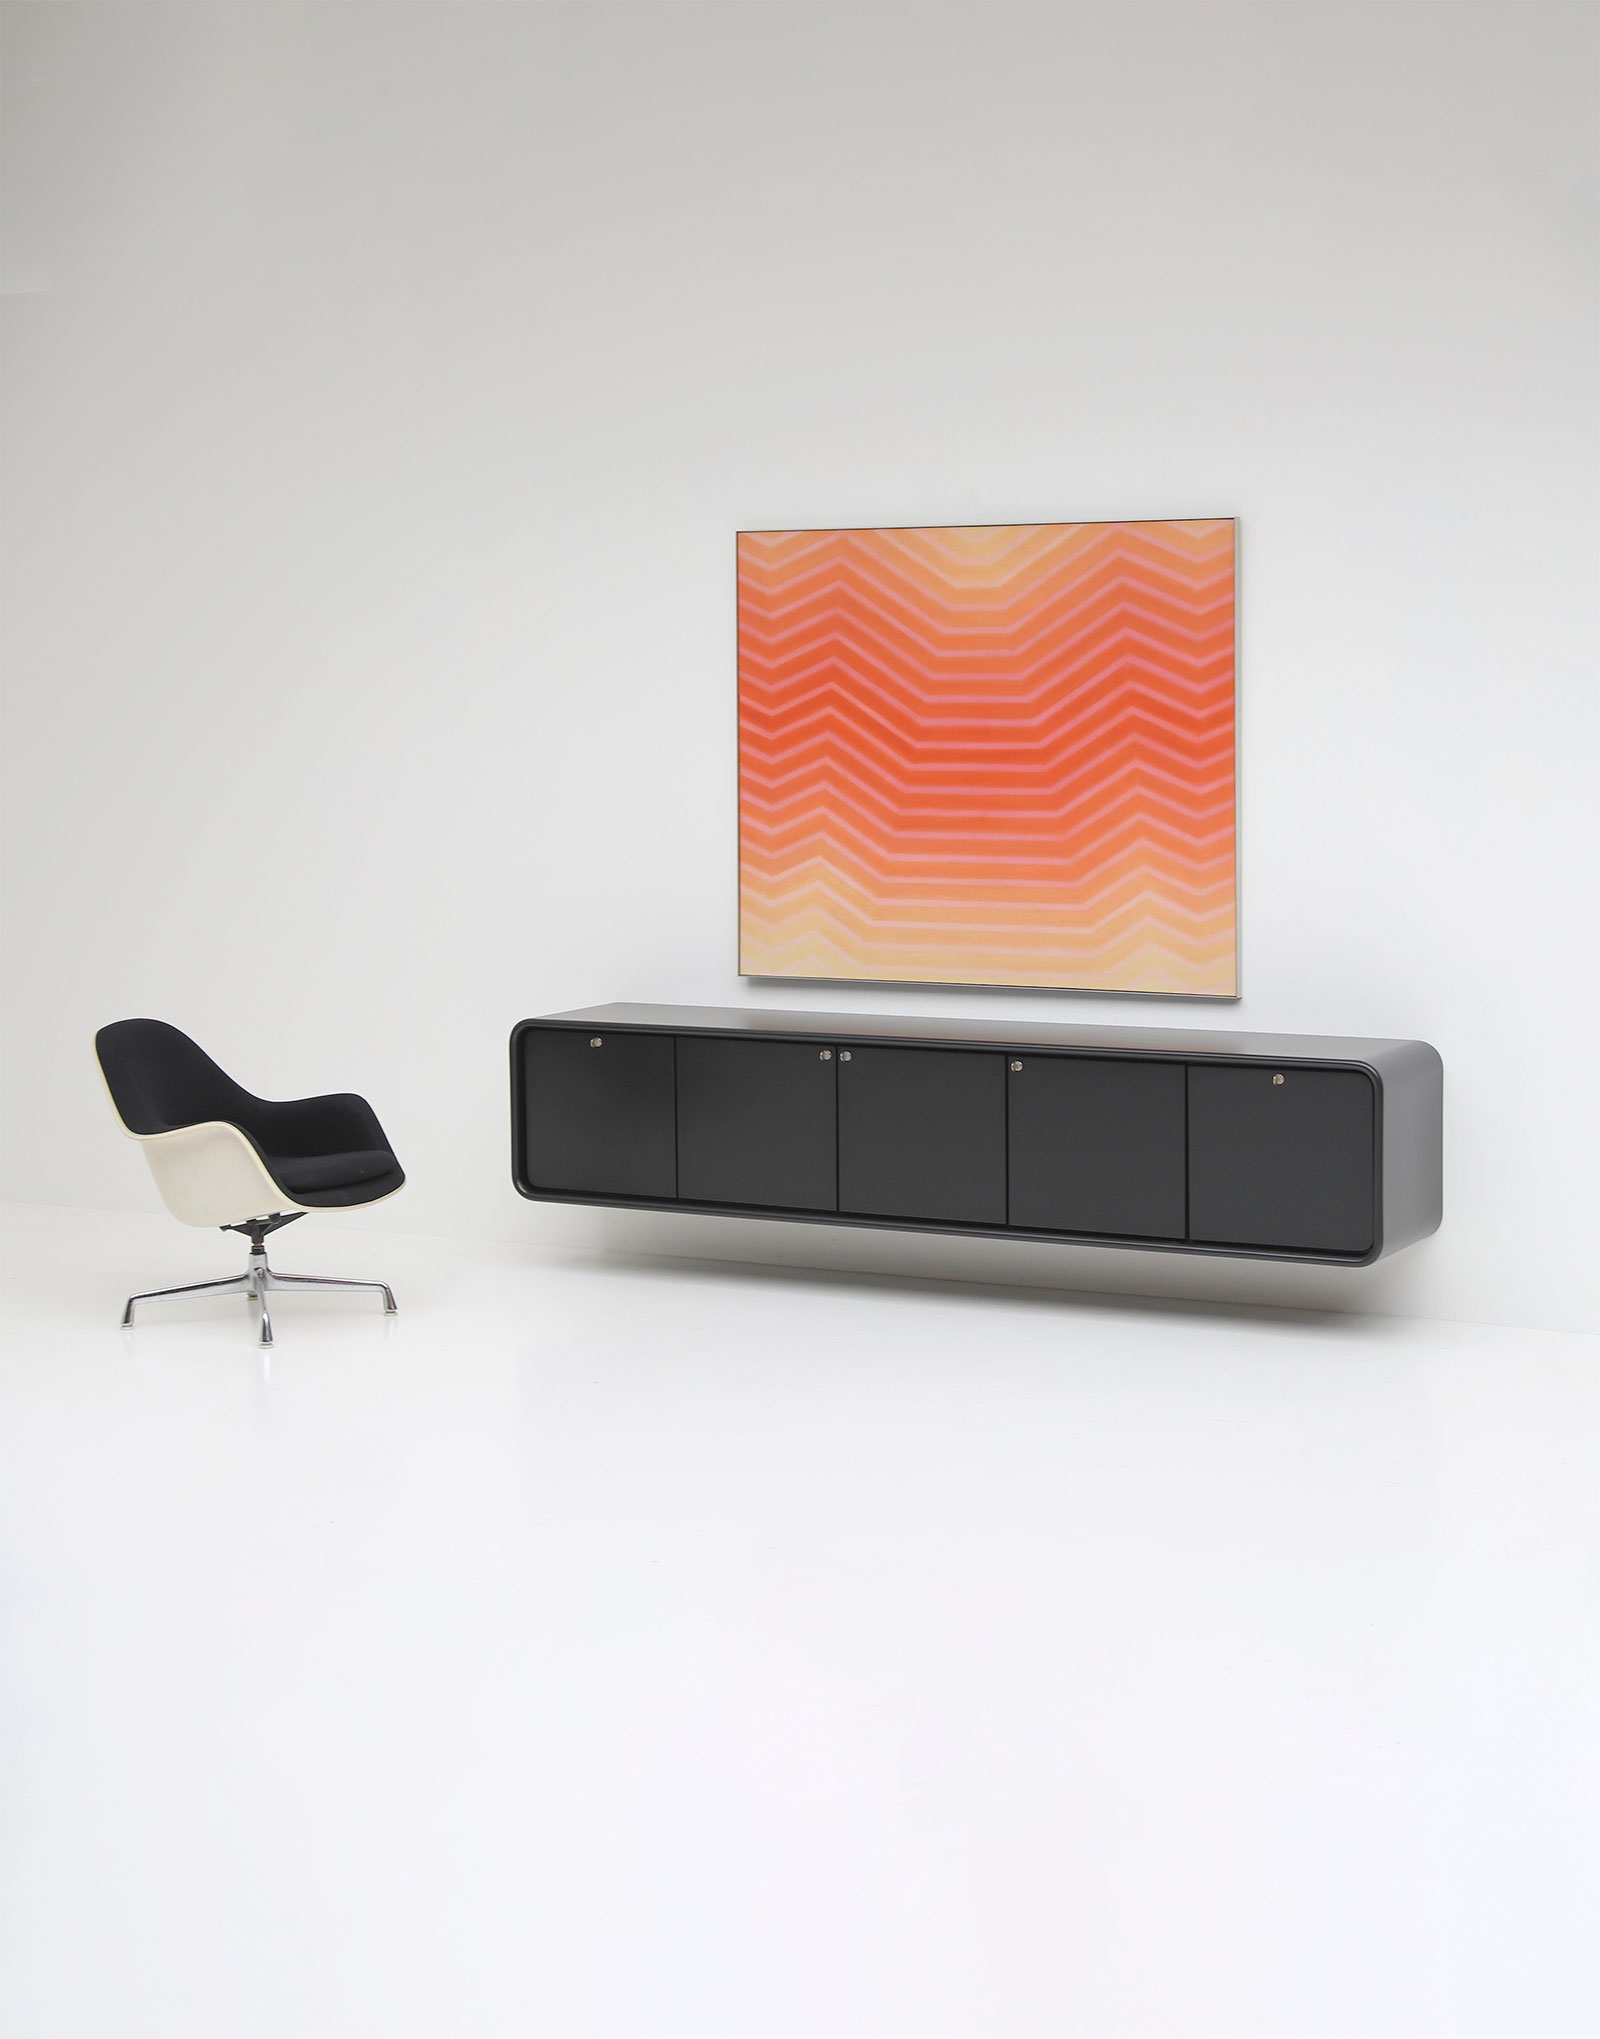 Black Minimalistic  Space Age Sideboard by Frank De Clercq